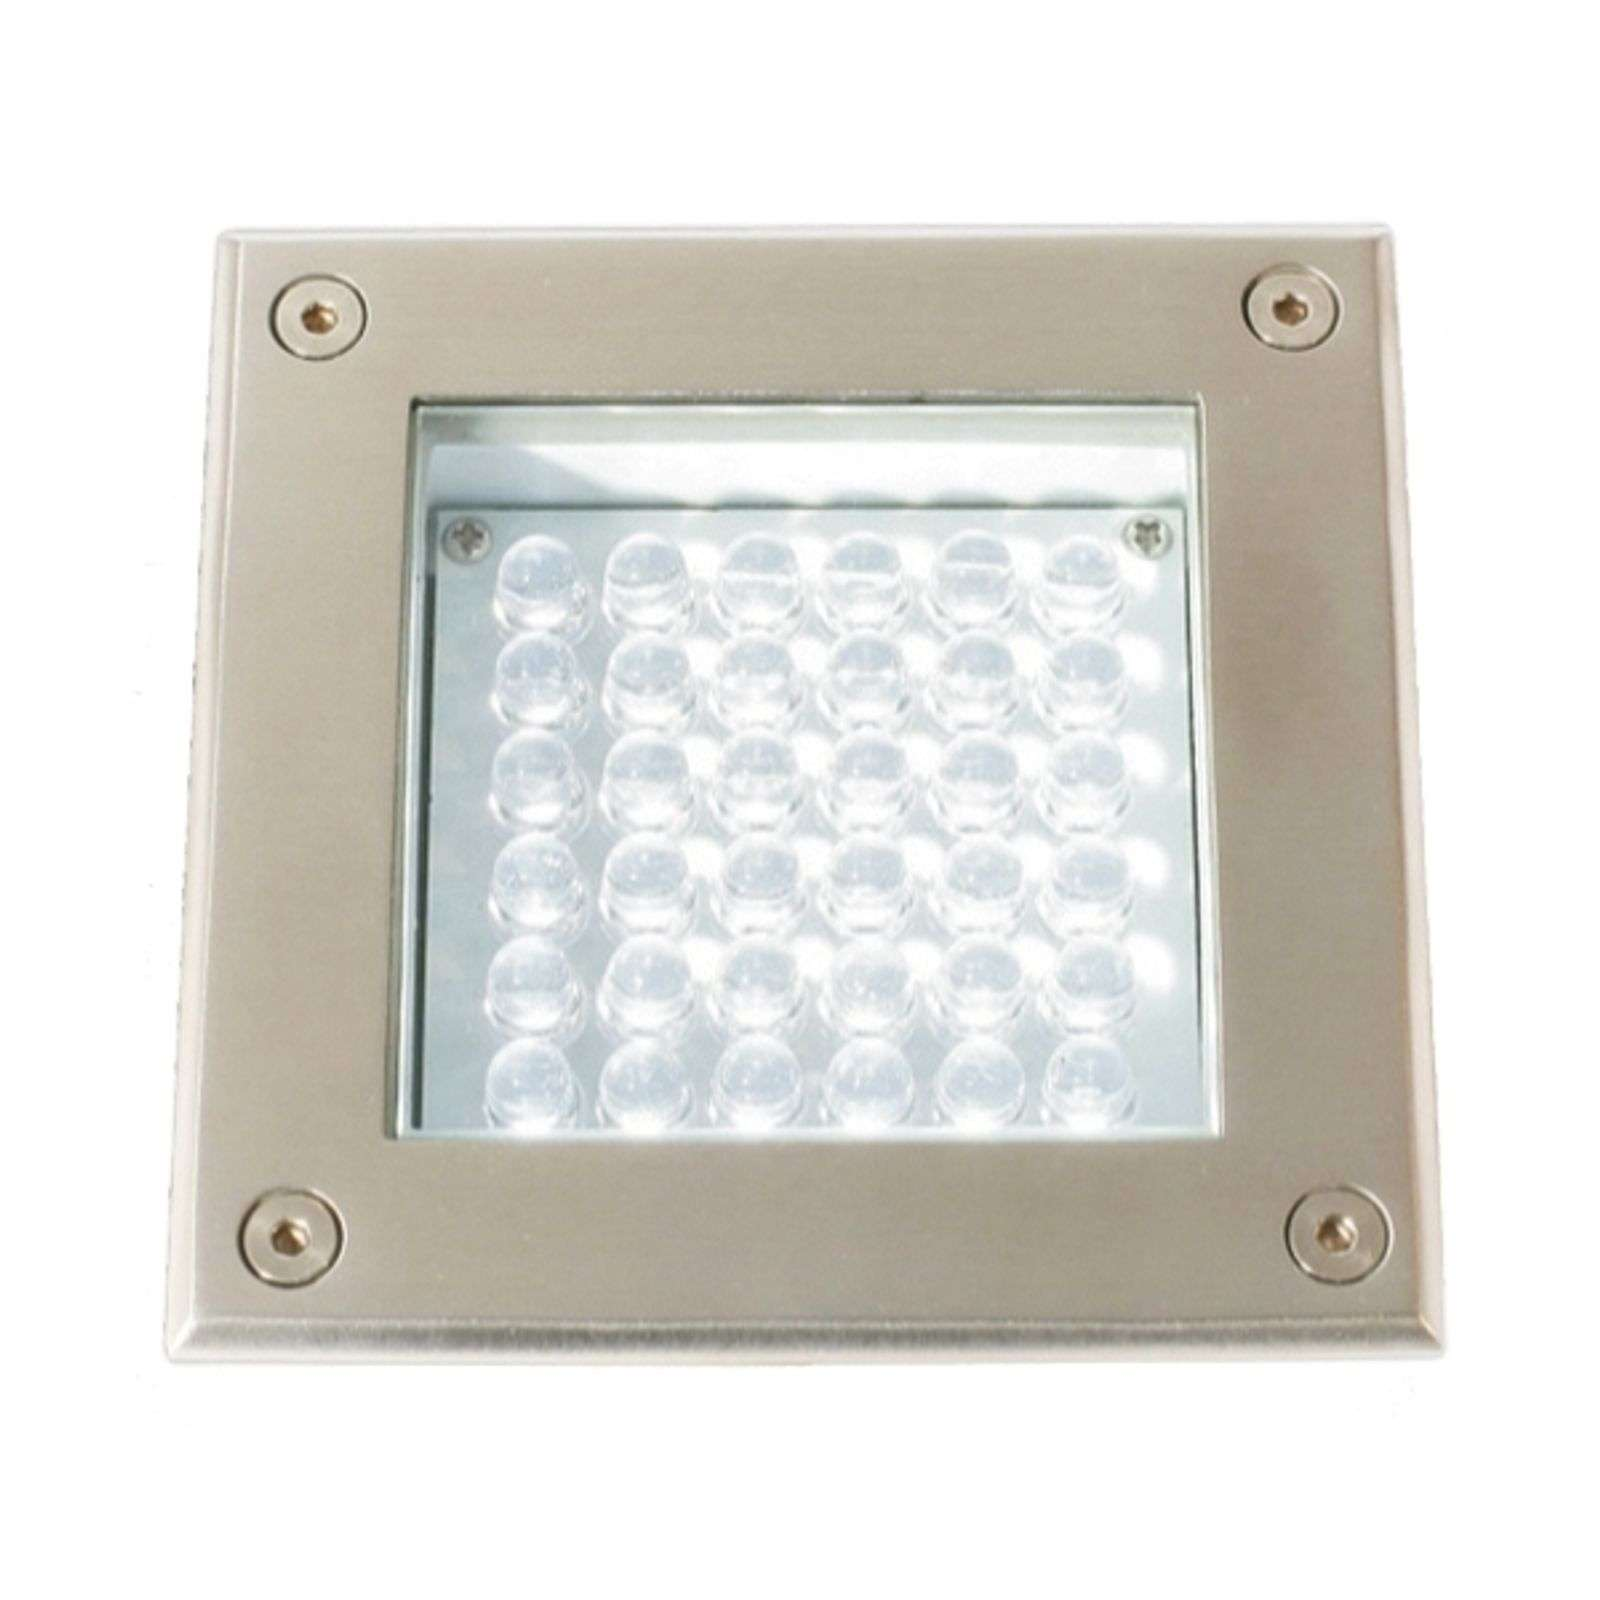 Spot encastrable au sol LED MEMA inox